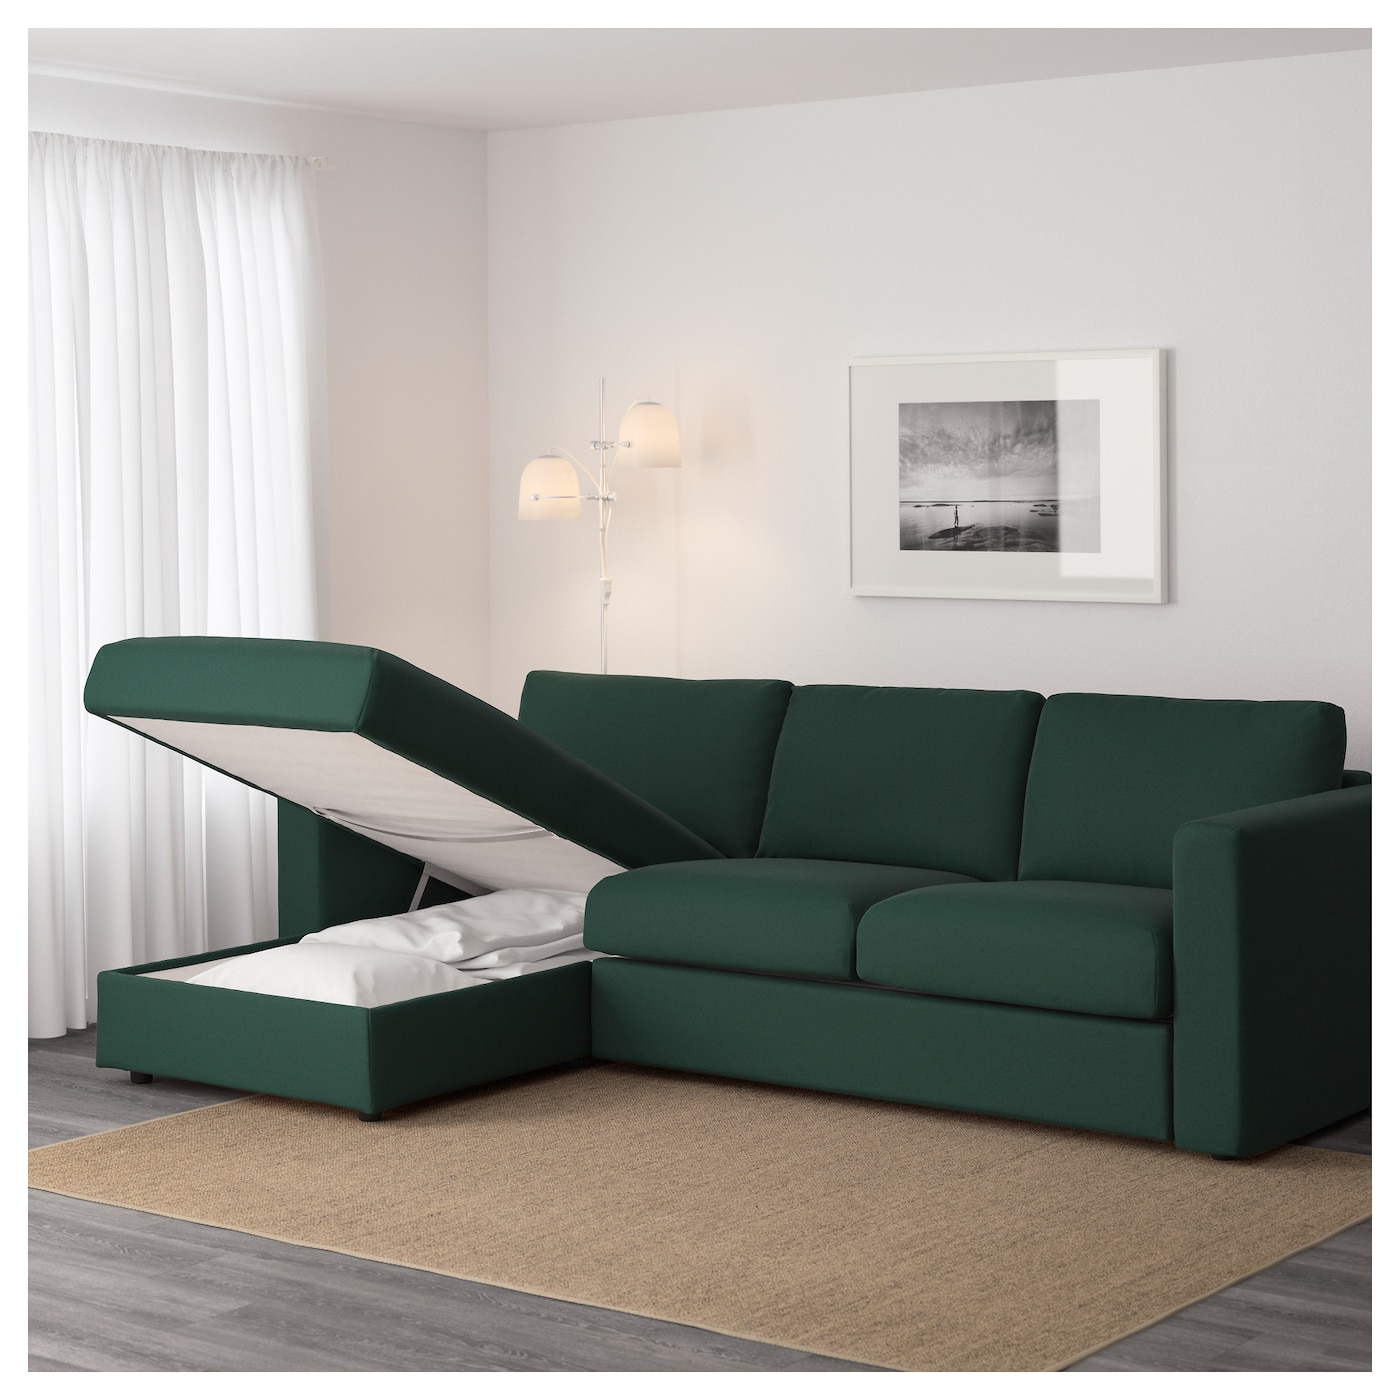 Vimle 3 seat sofa with chaise longue gunnared dark green for Green sectional sofa with chaise